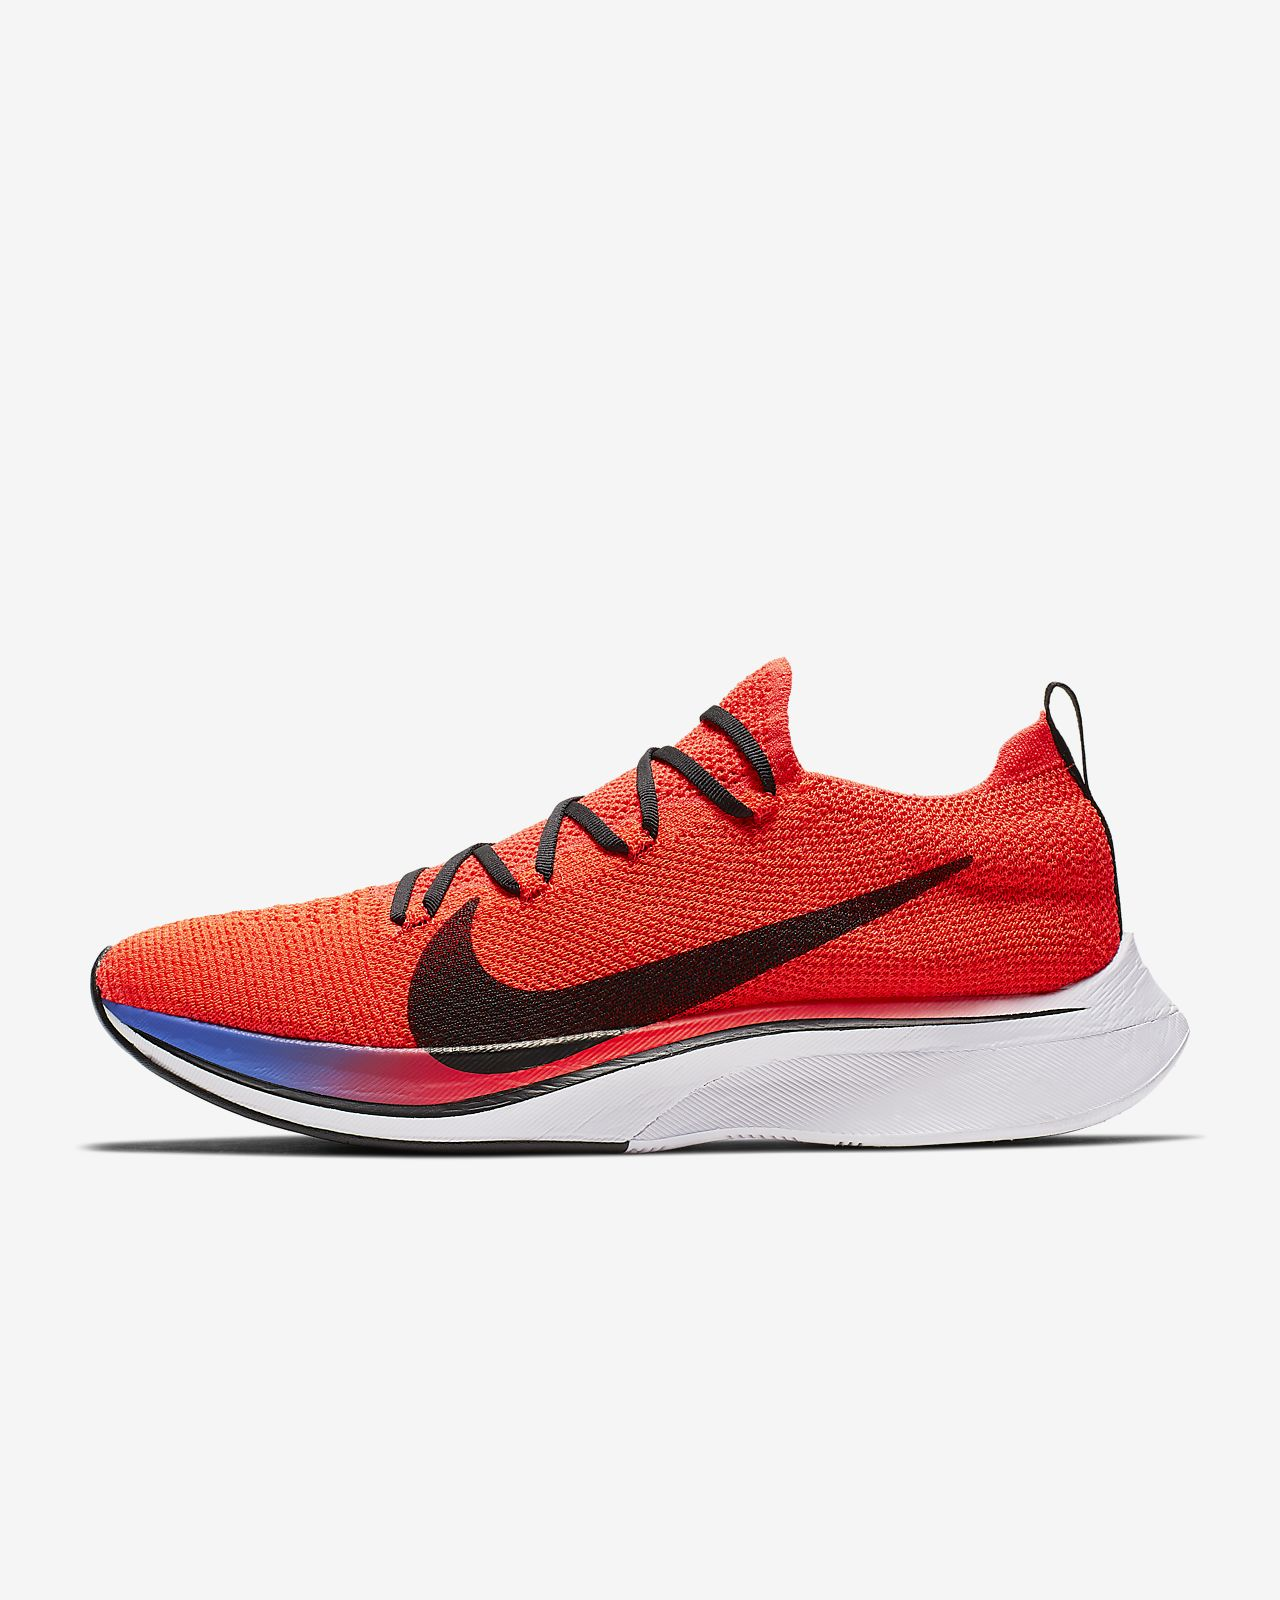 wholesale dealer 2eacf a7f43 Running Shoe. Nike Vaporfly 4% Flyknit